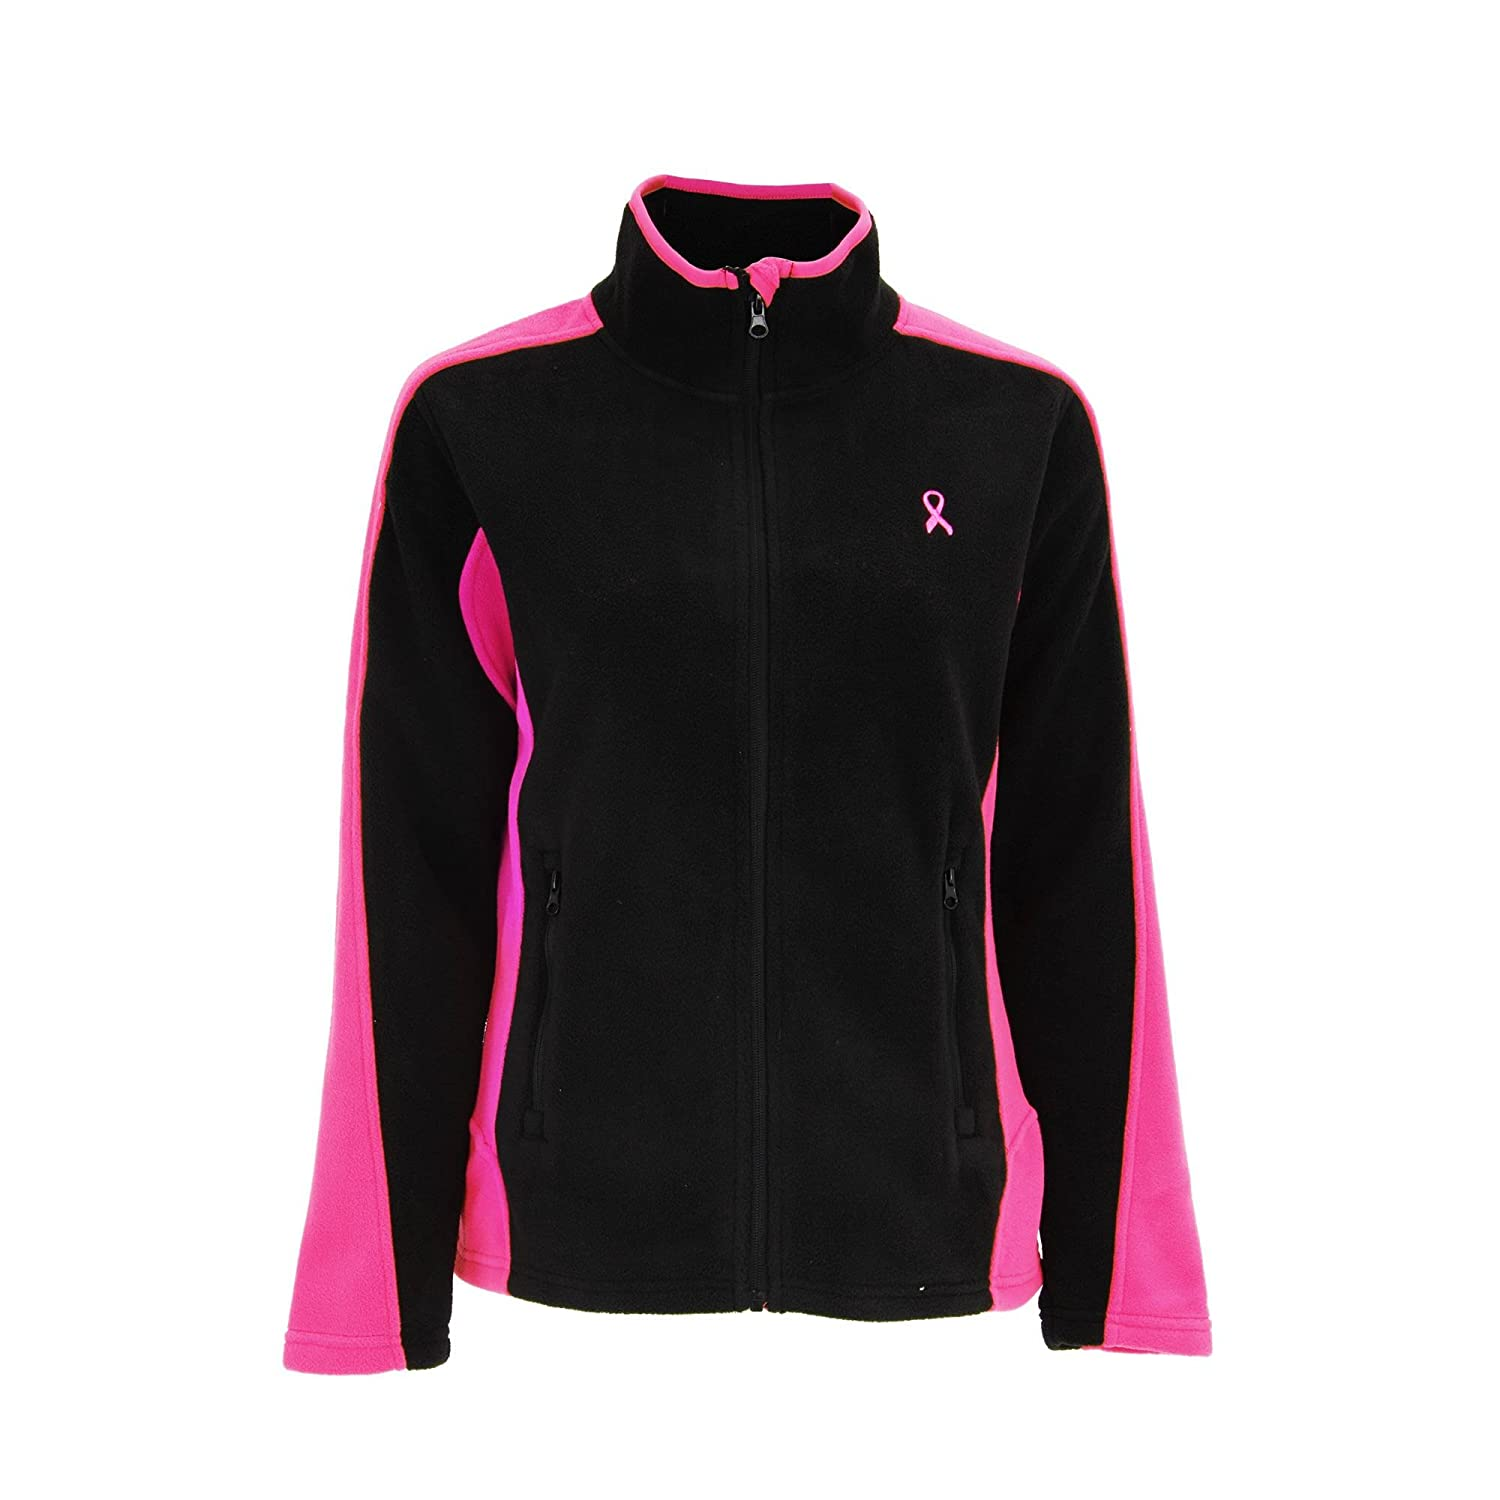 10f4f7484 GreaterGood Pink Ribbon Zip Fleece Jacket